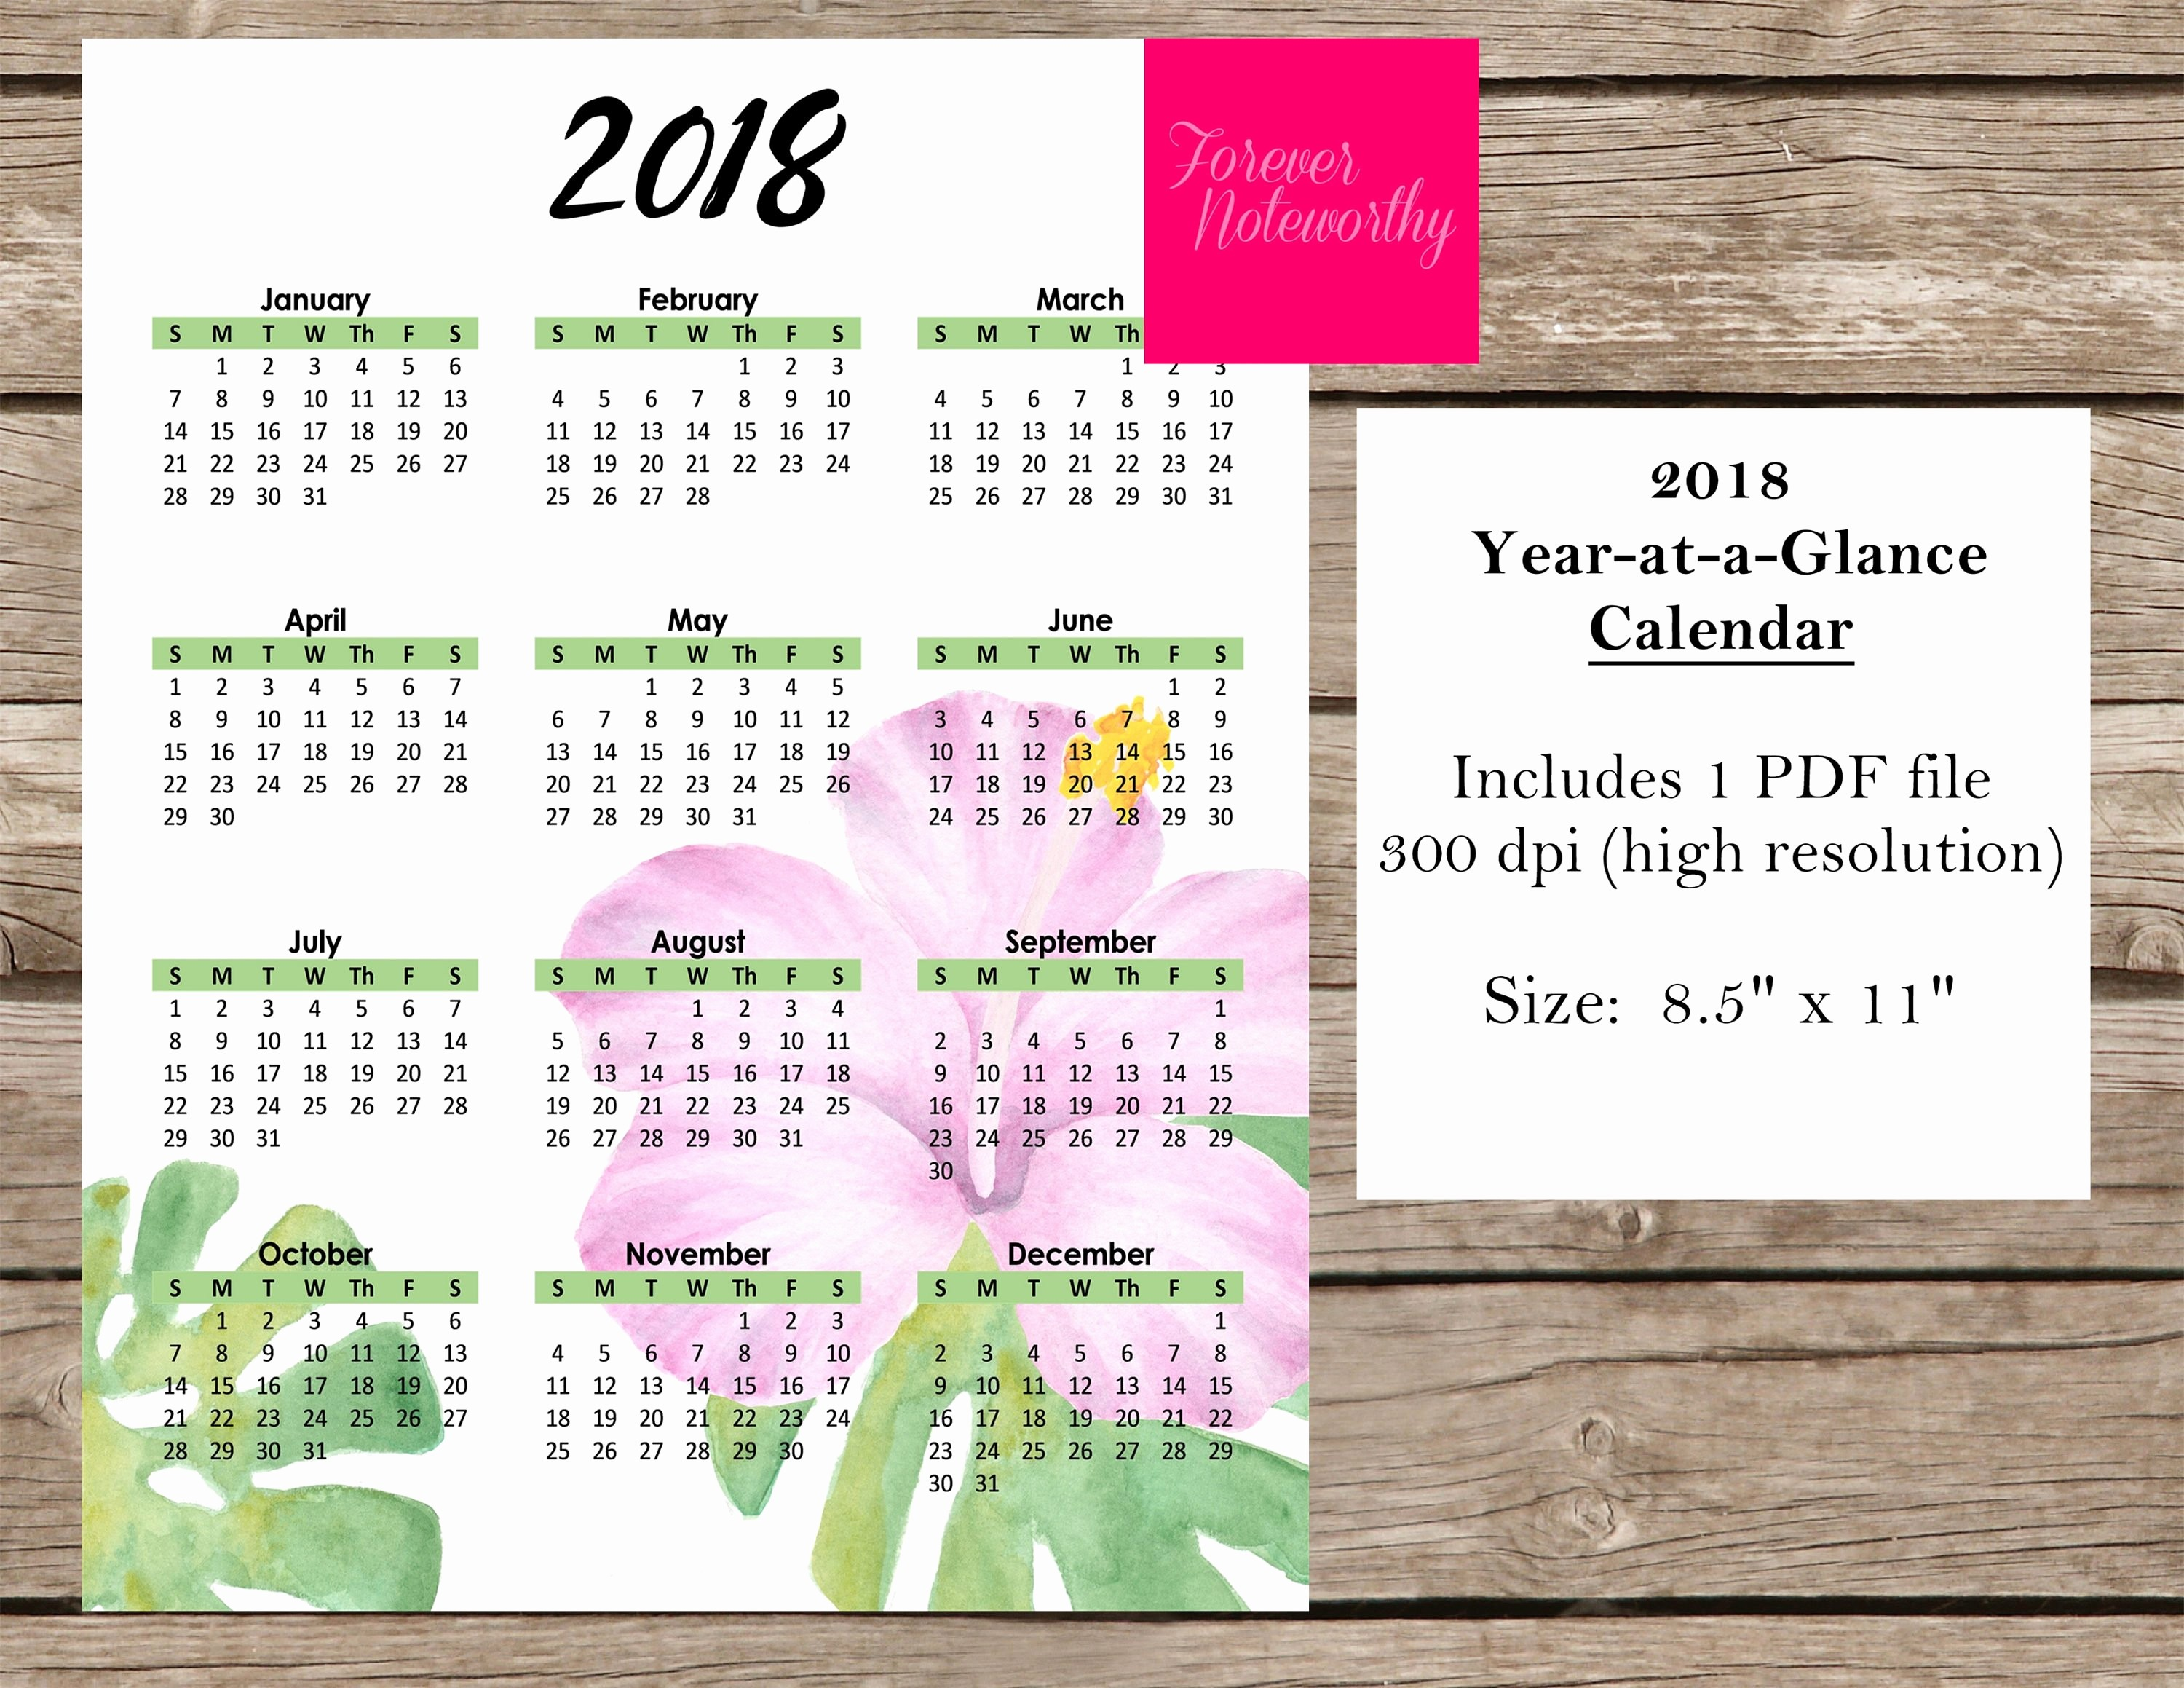 At A Glance 2018 Calendar Inspirational Printable 2018 Calendar Year at A Glance Instant Download